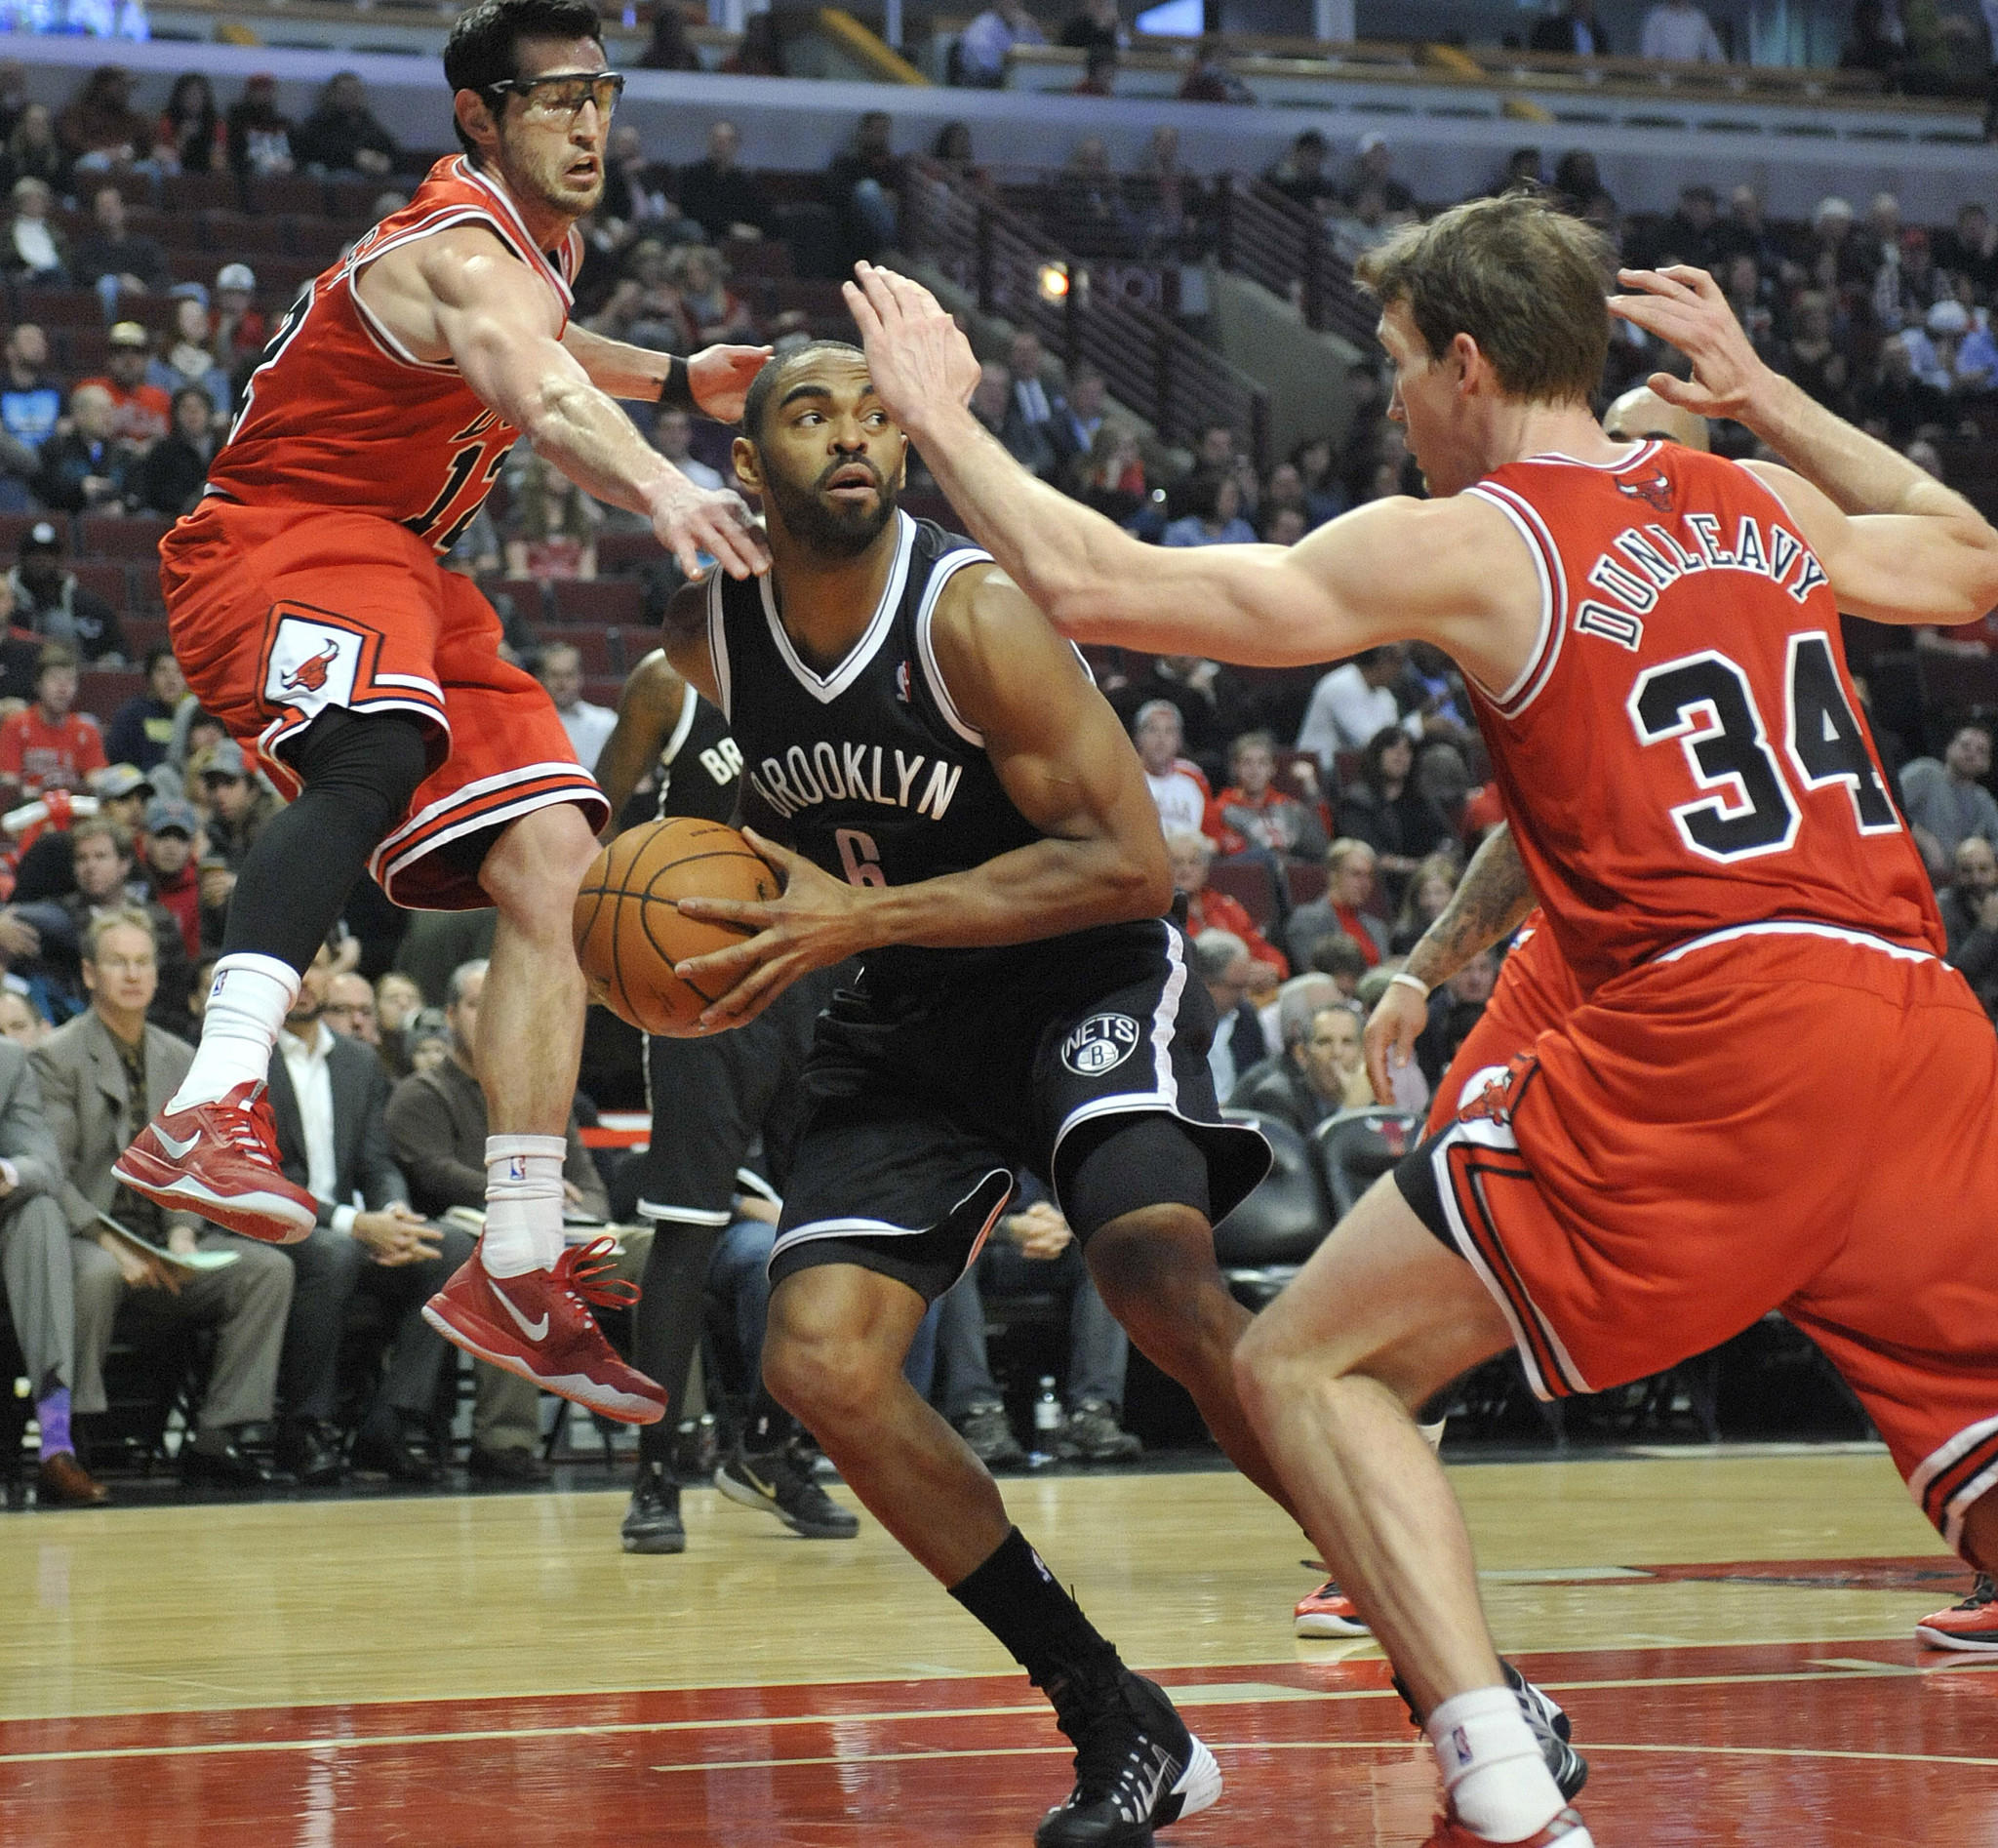 The Nets' Alan Anderson is defended by Kirk Hinrich and Mike Dunleavy during the first quarter at the United Center.